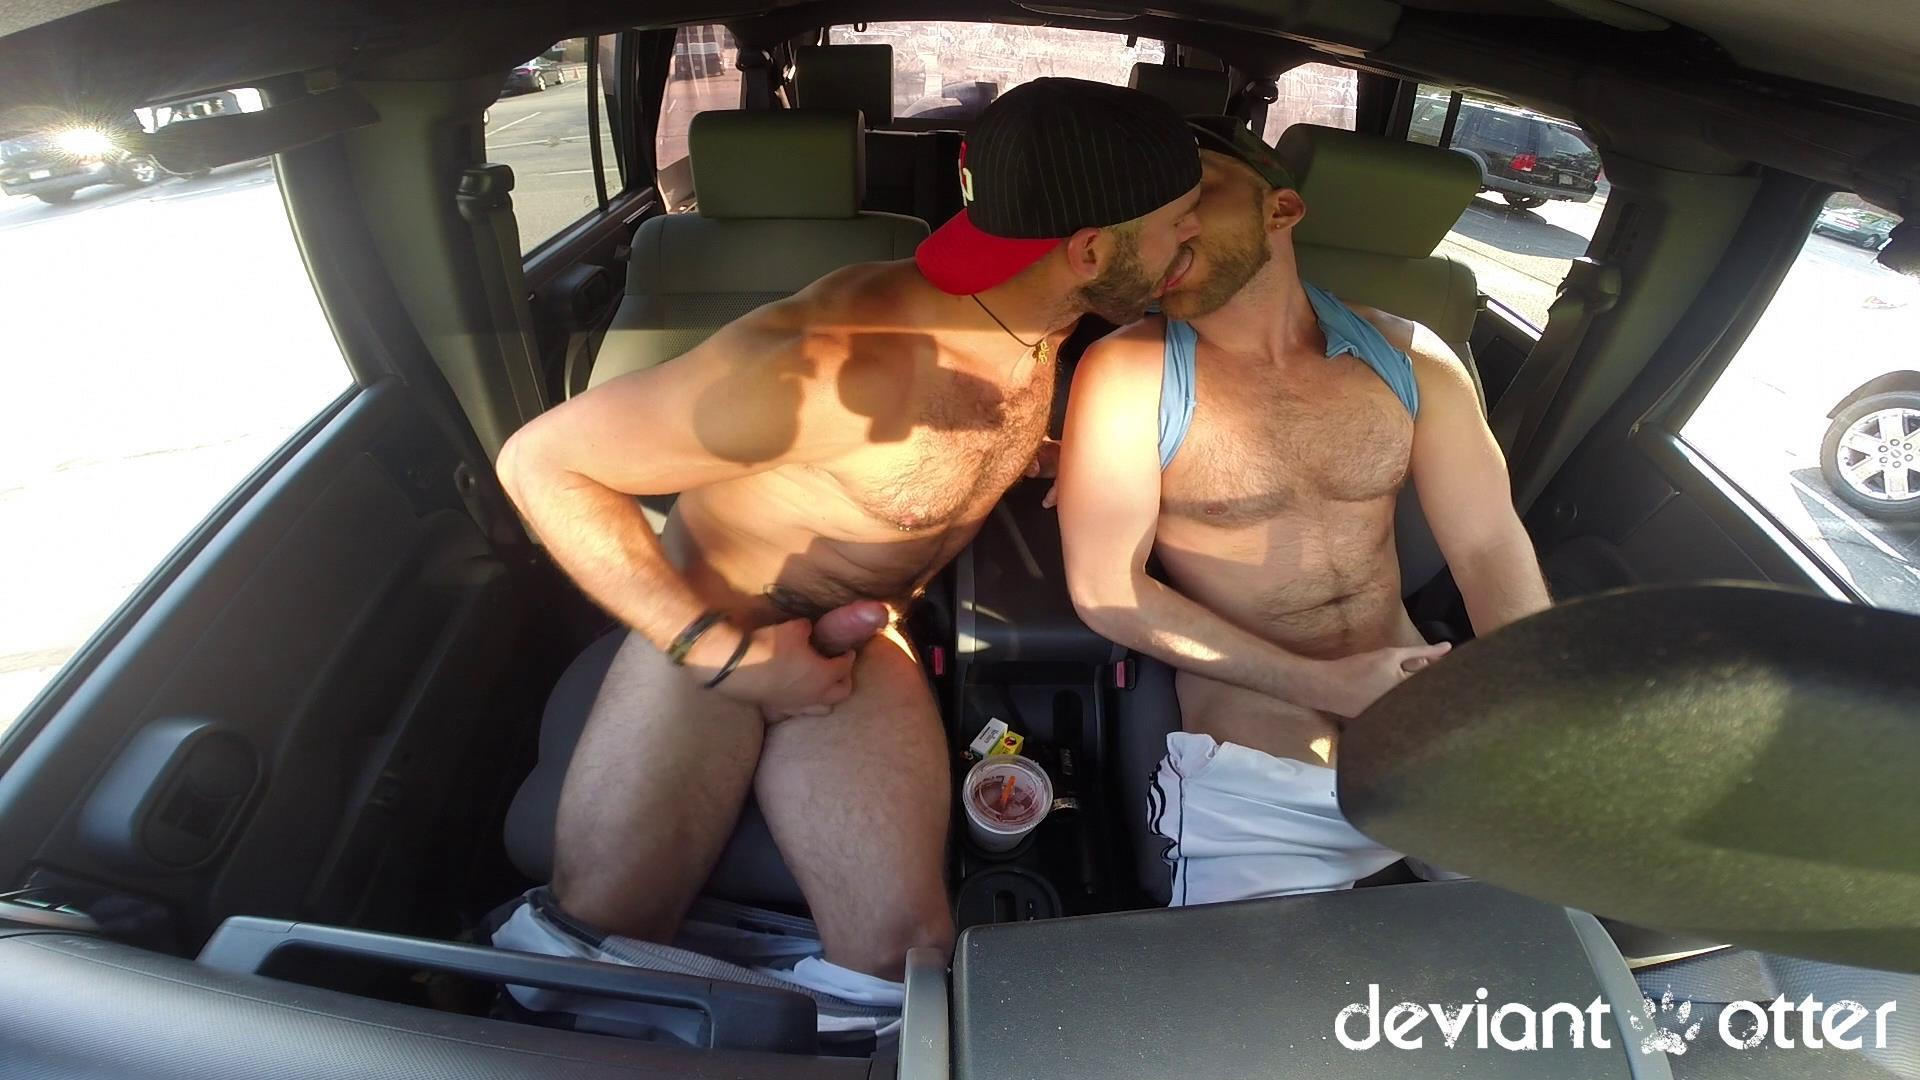 Deviant Otter Xavier Sucking Cock In Public Hairy Guys Amateur Gay Porn 12 Masculine Hairy Guys Sucking Each Others Cock In A Parking Lot